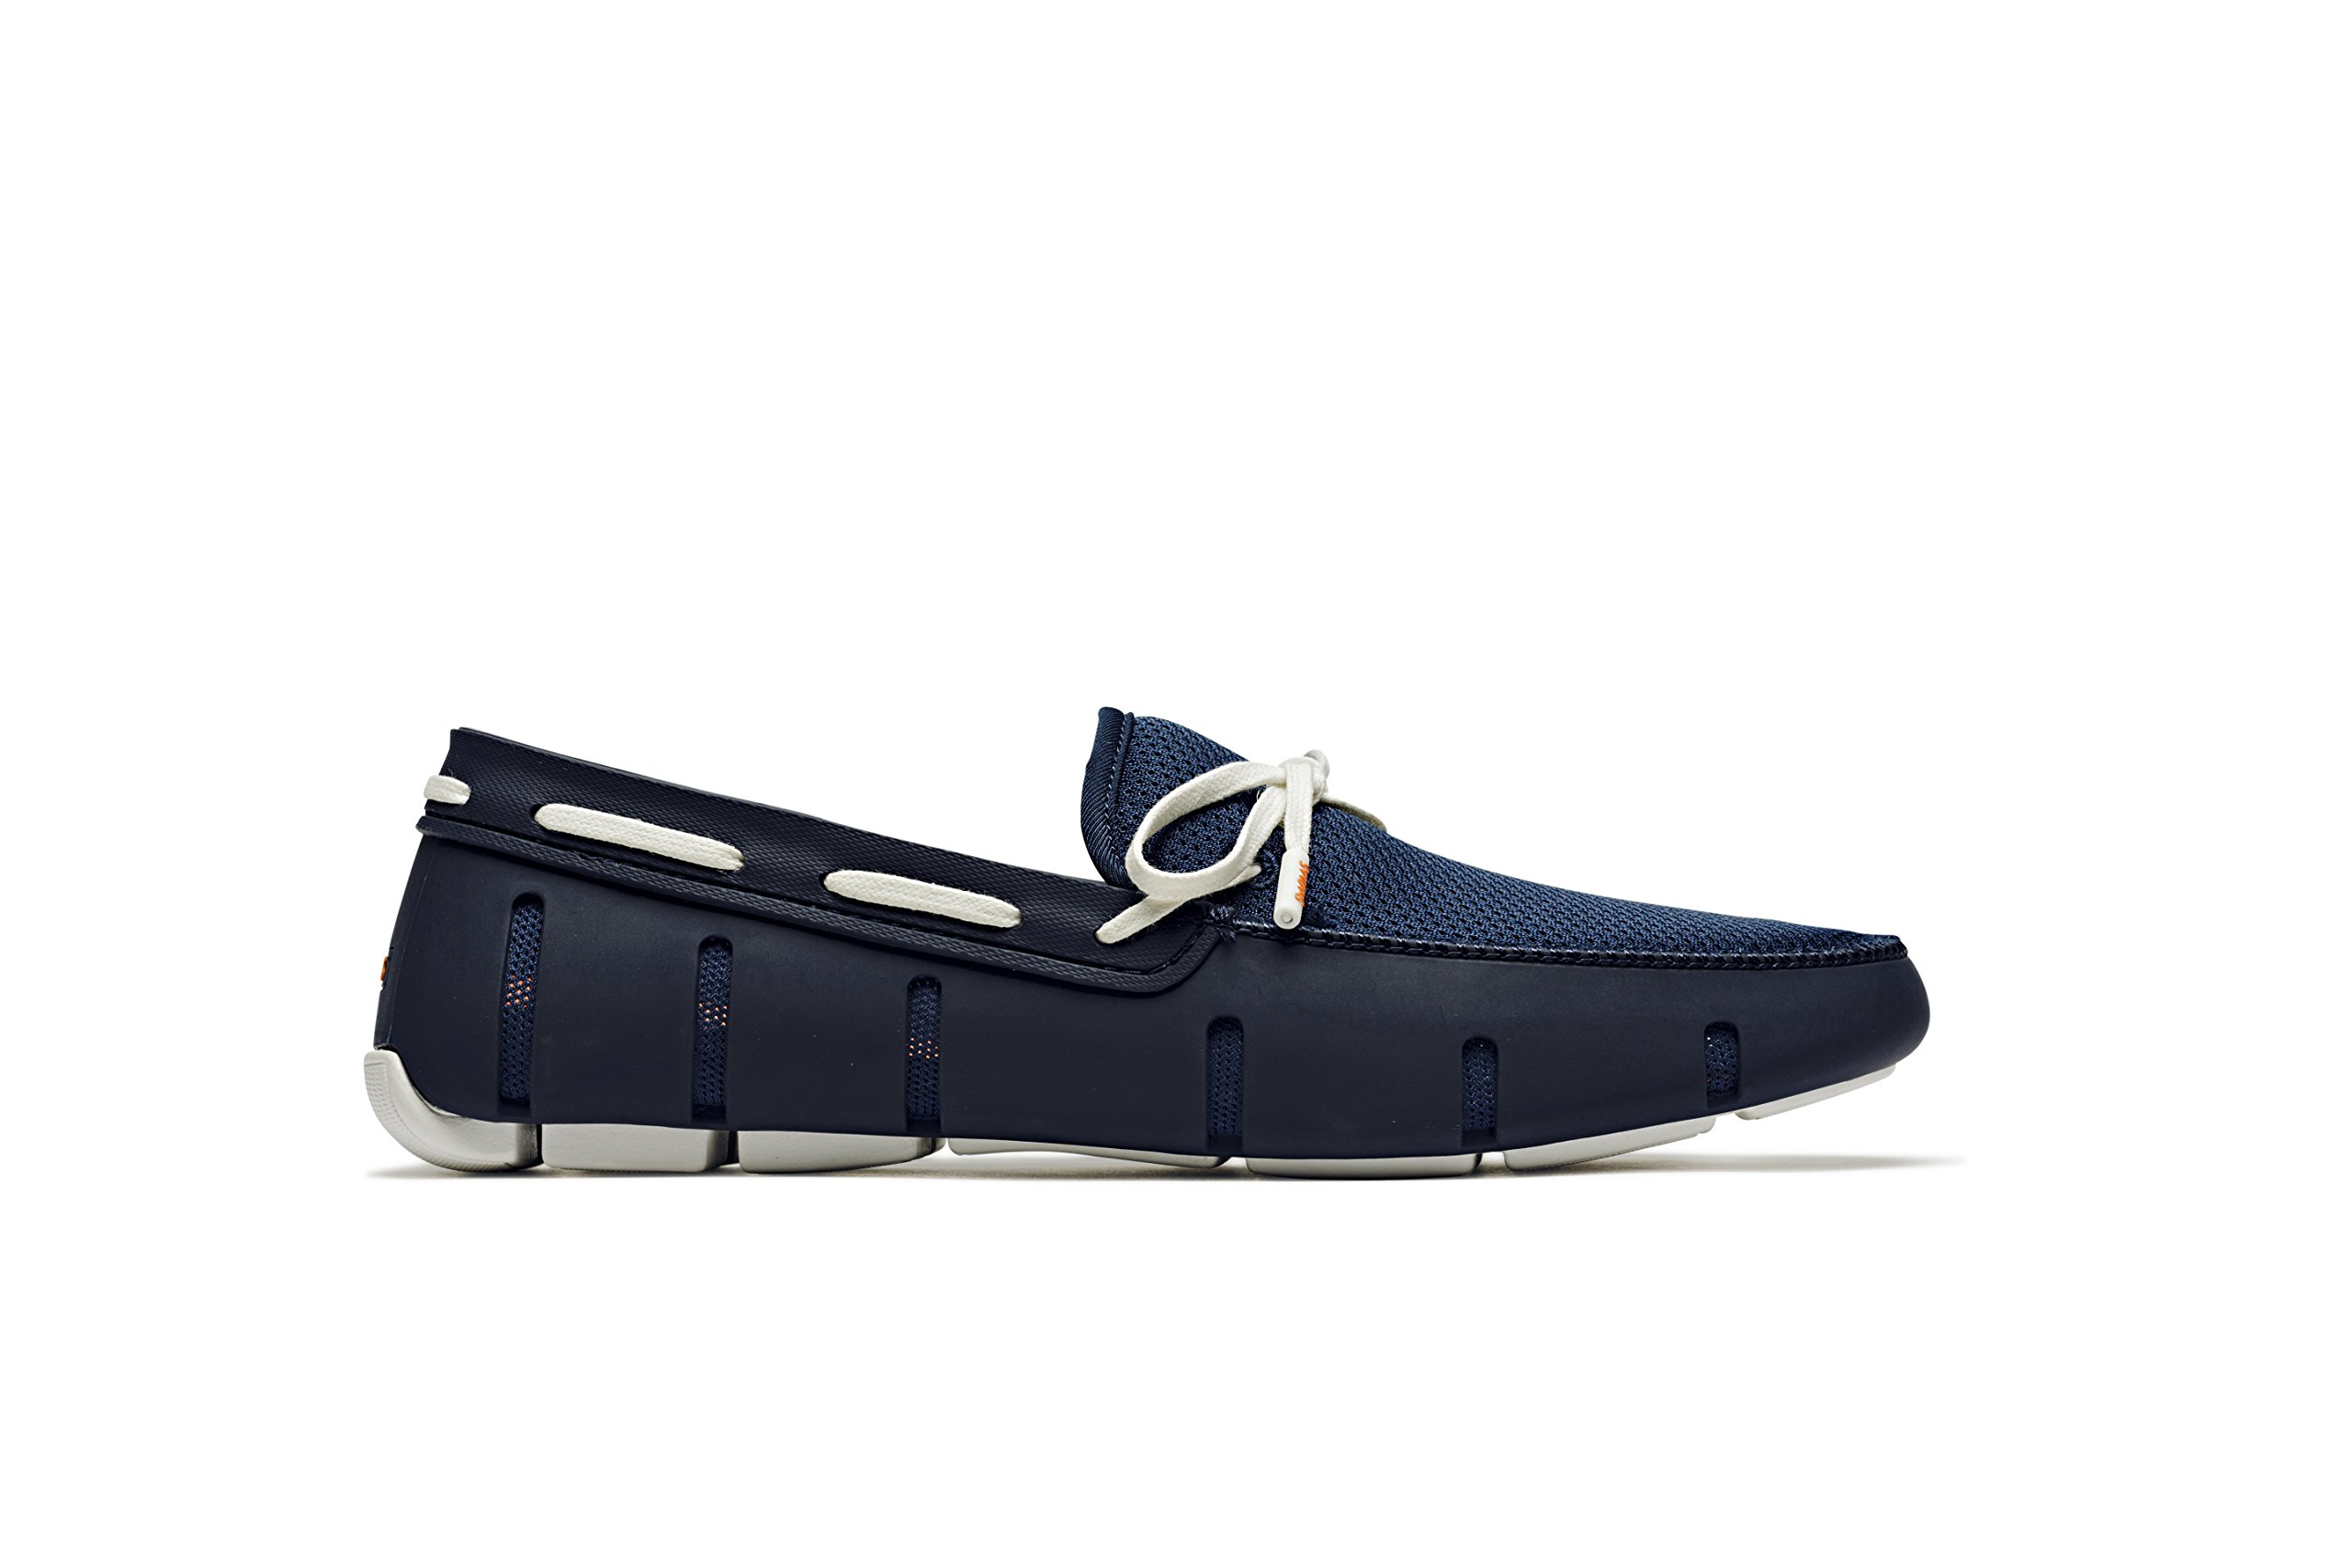 SWIMS Men's Lace Loafer for Pool - Navy/White, 10 D(M) US